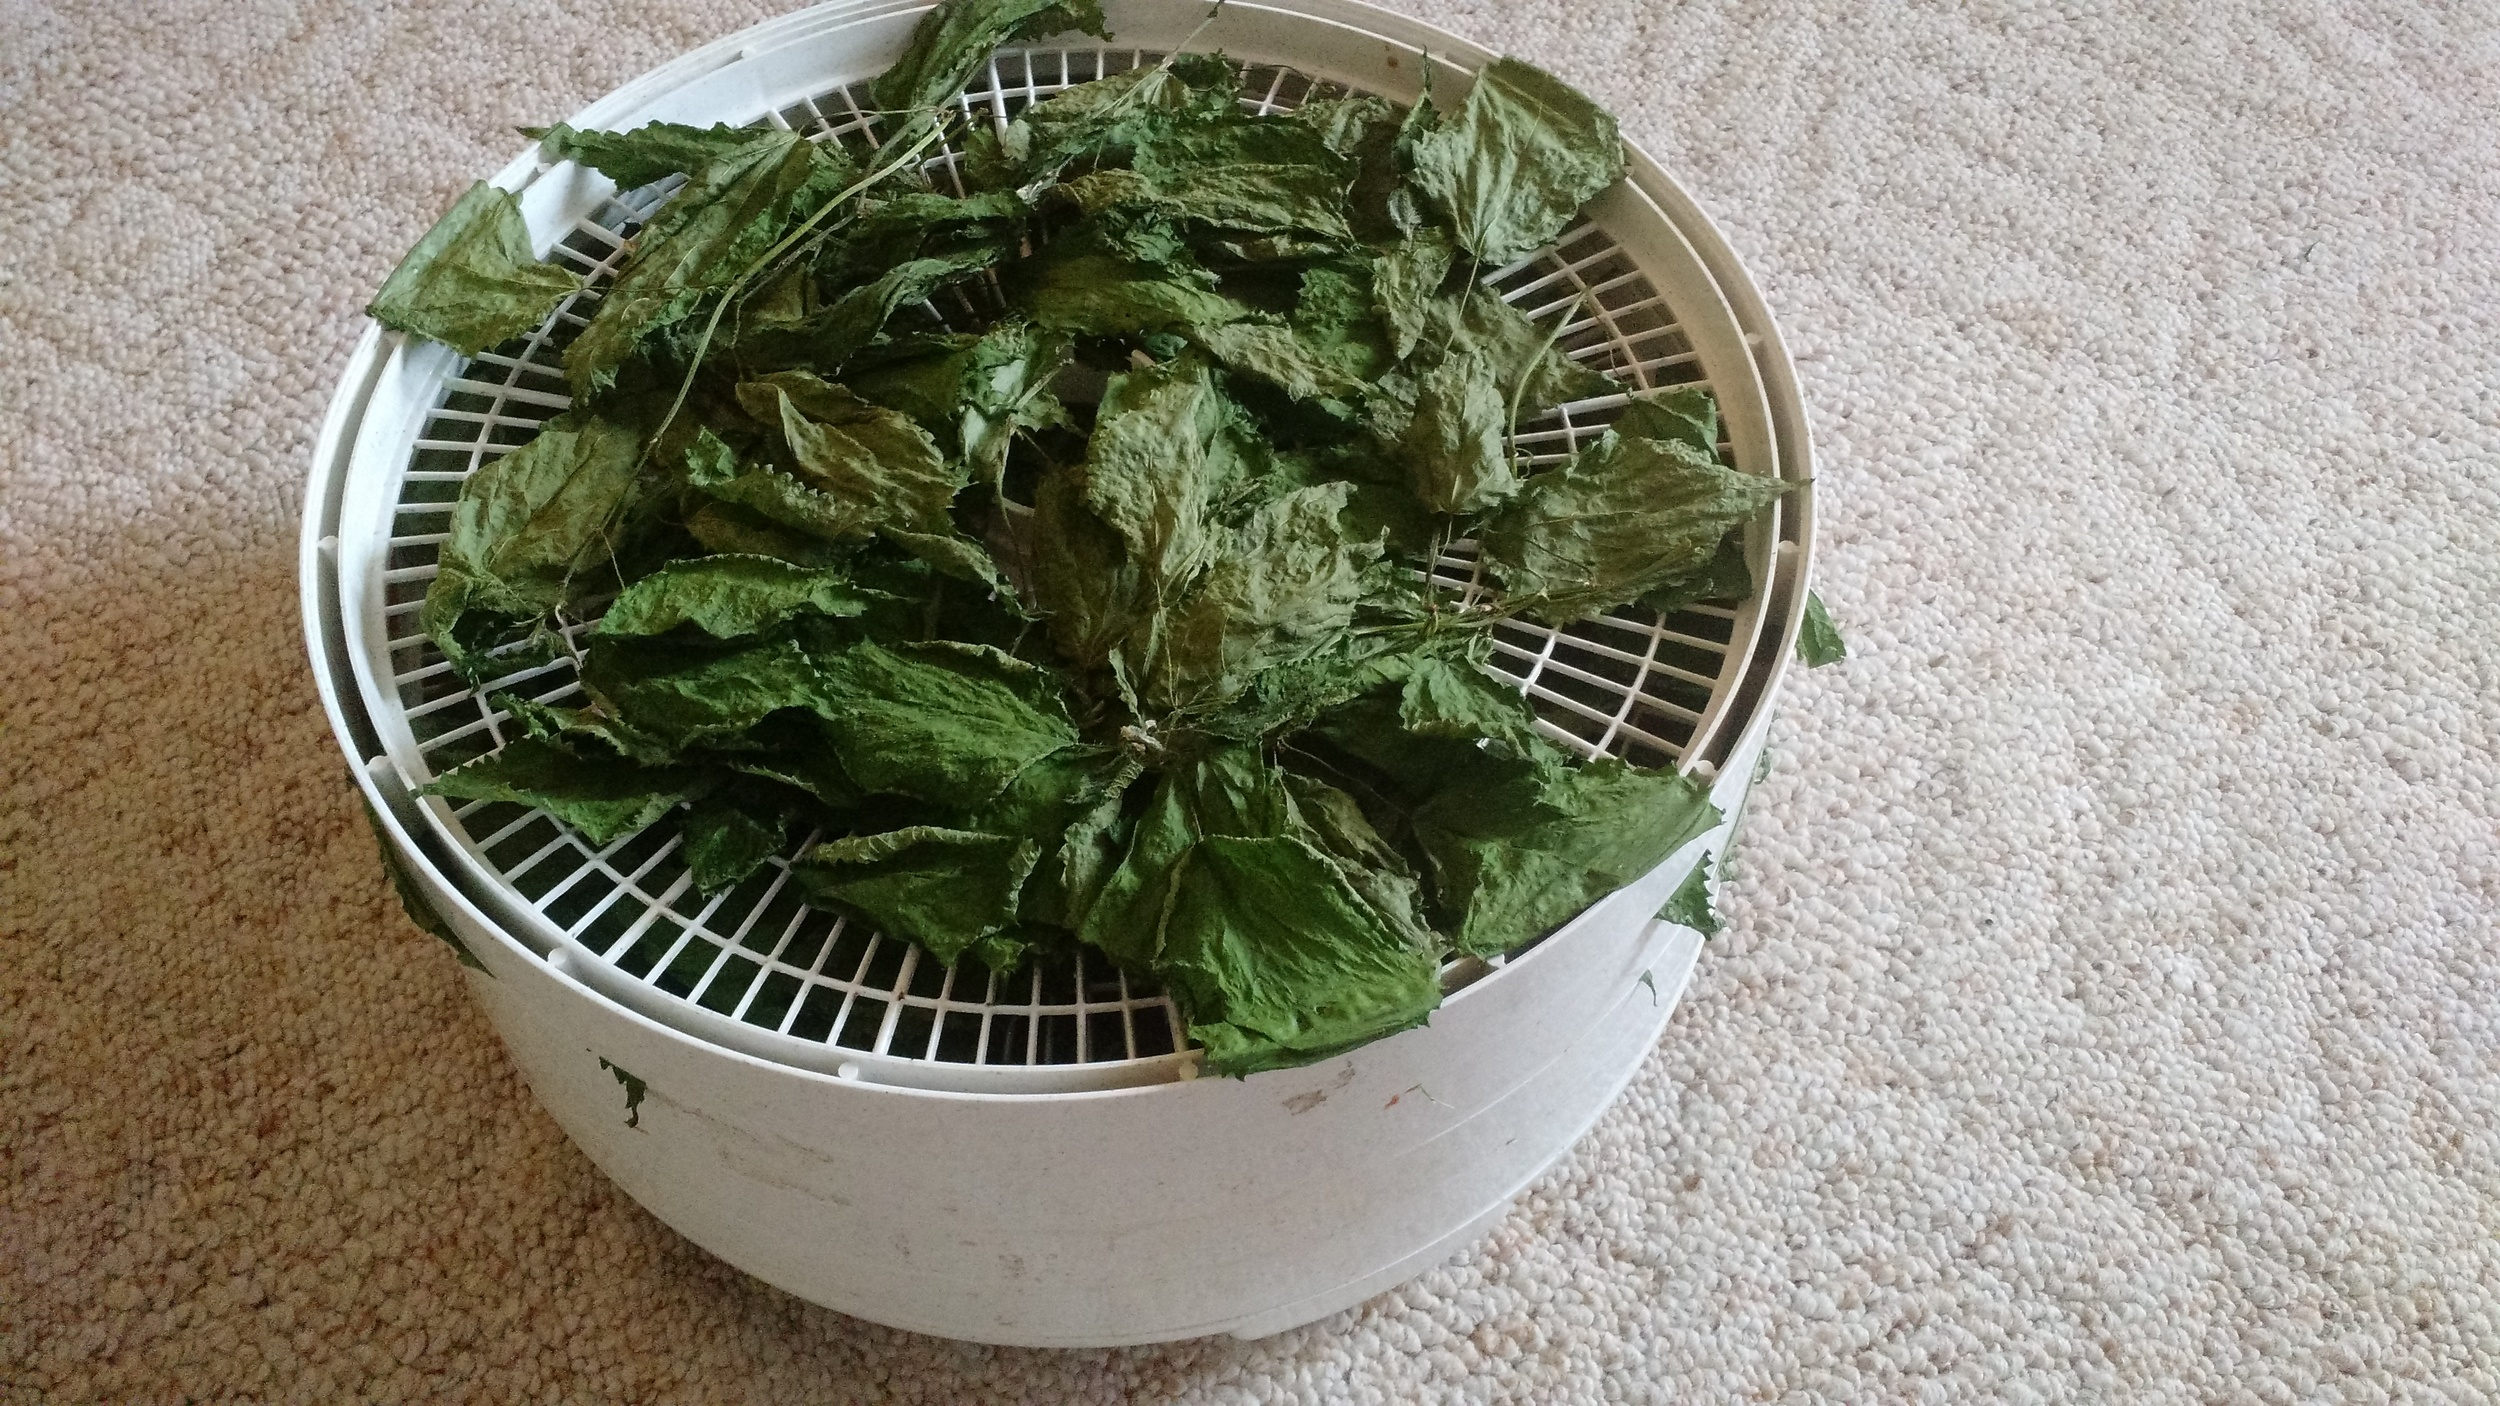 Drying nettles.